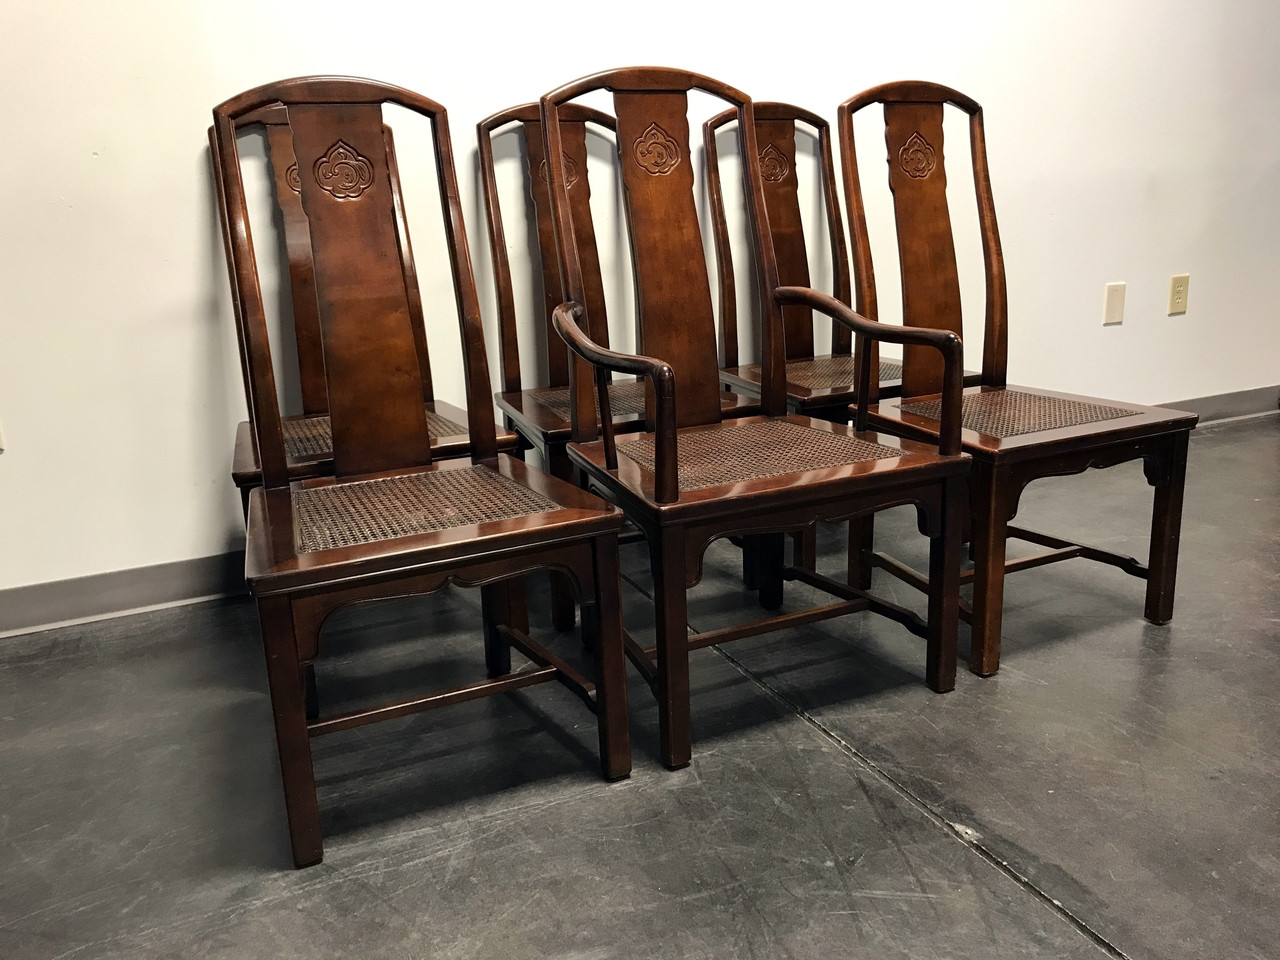 SOLD OUT Vintage HENREDON Asian Chinoiserie Dining Chairs w Cane Seats Set of 6